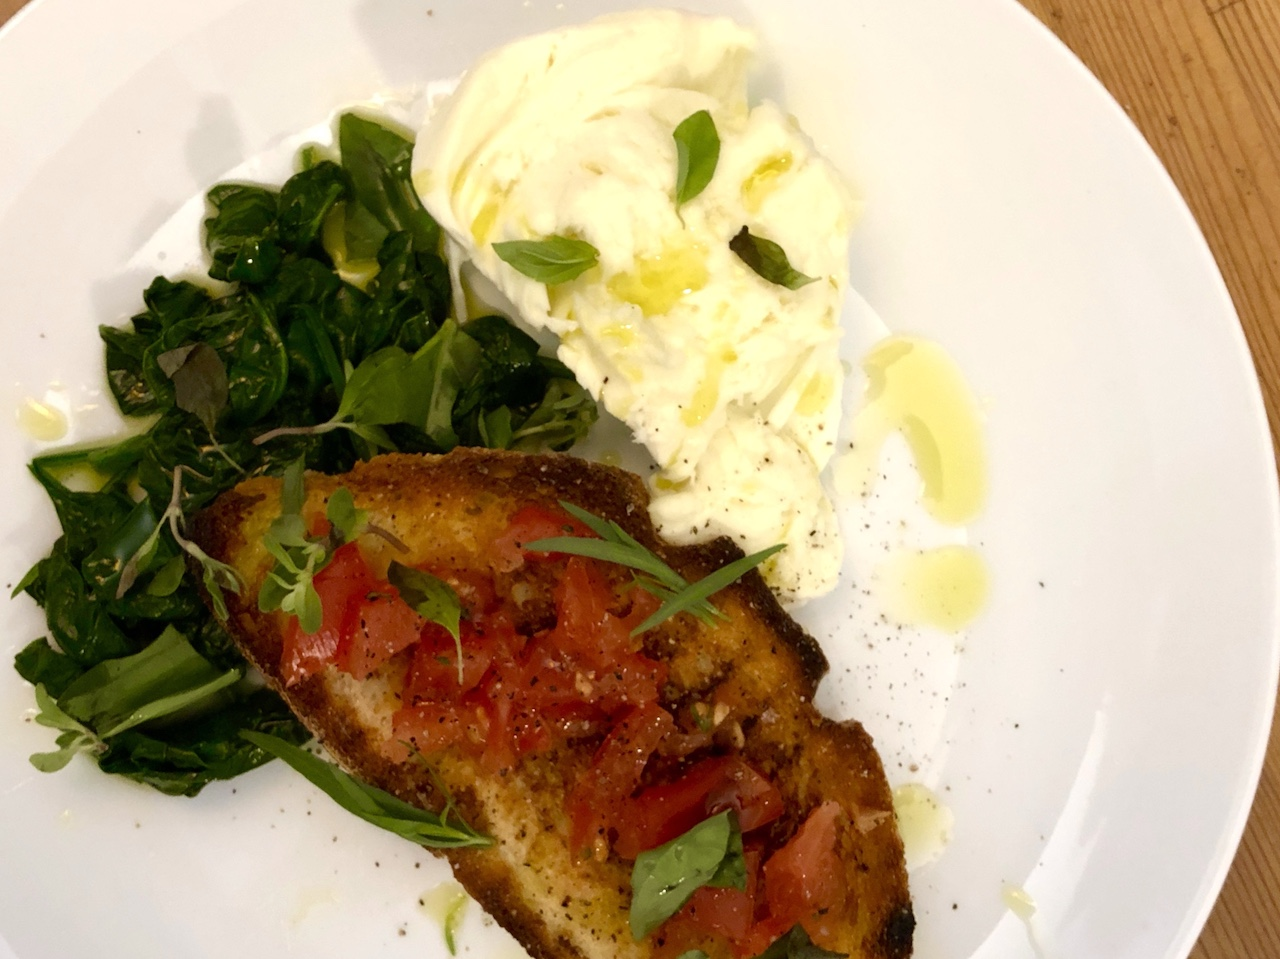 River Cafe Bruschetta with tomatoes, fresh mozzarella and spinach